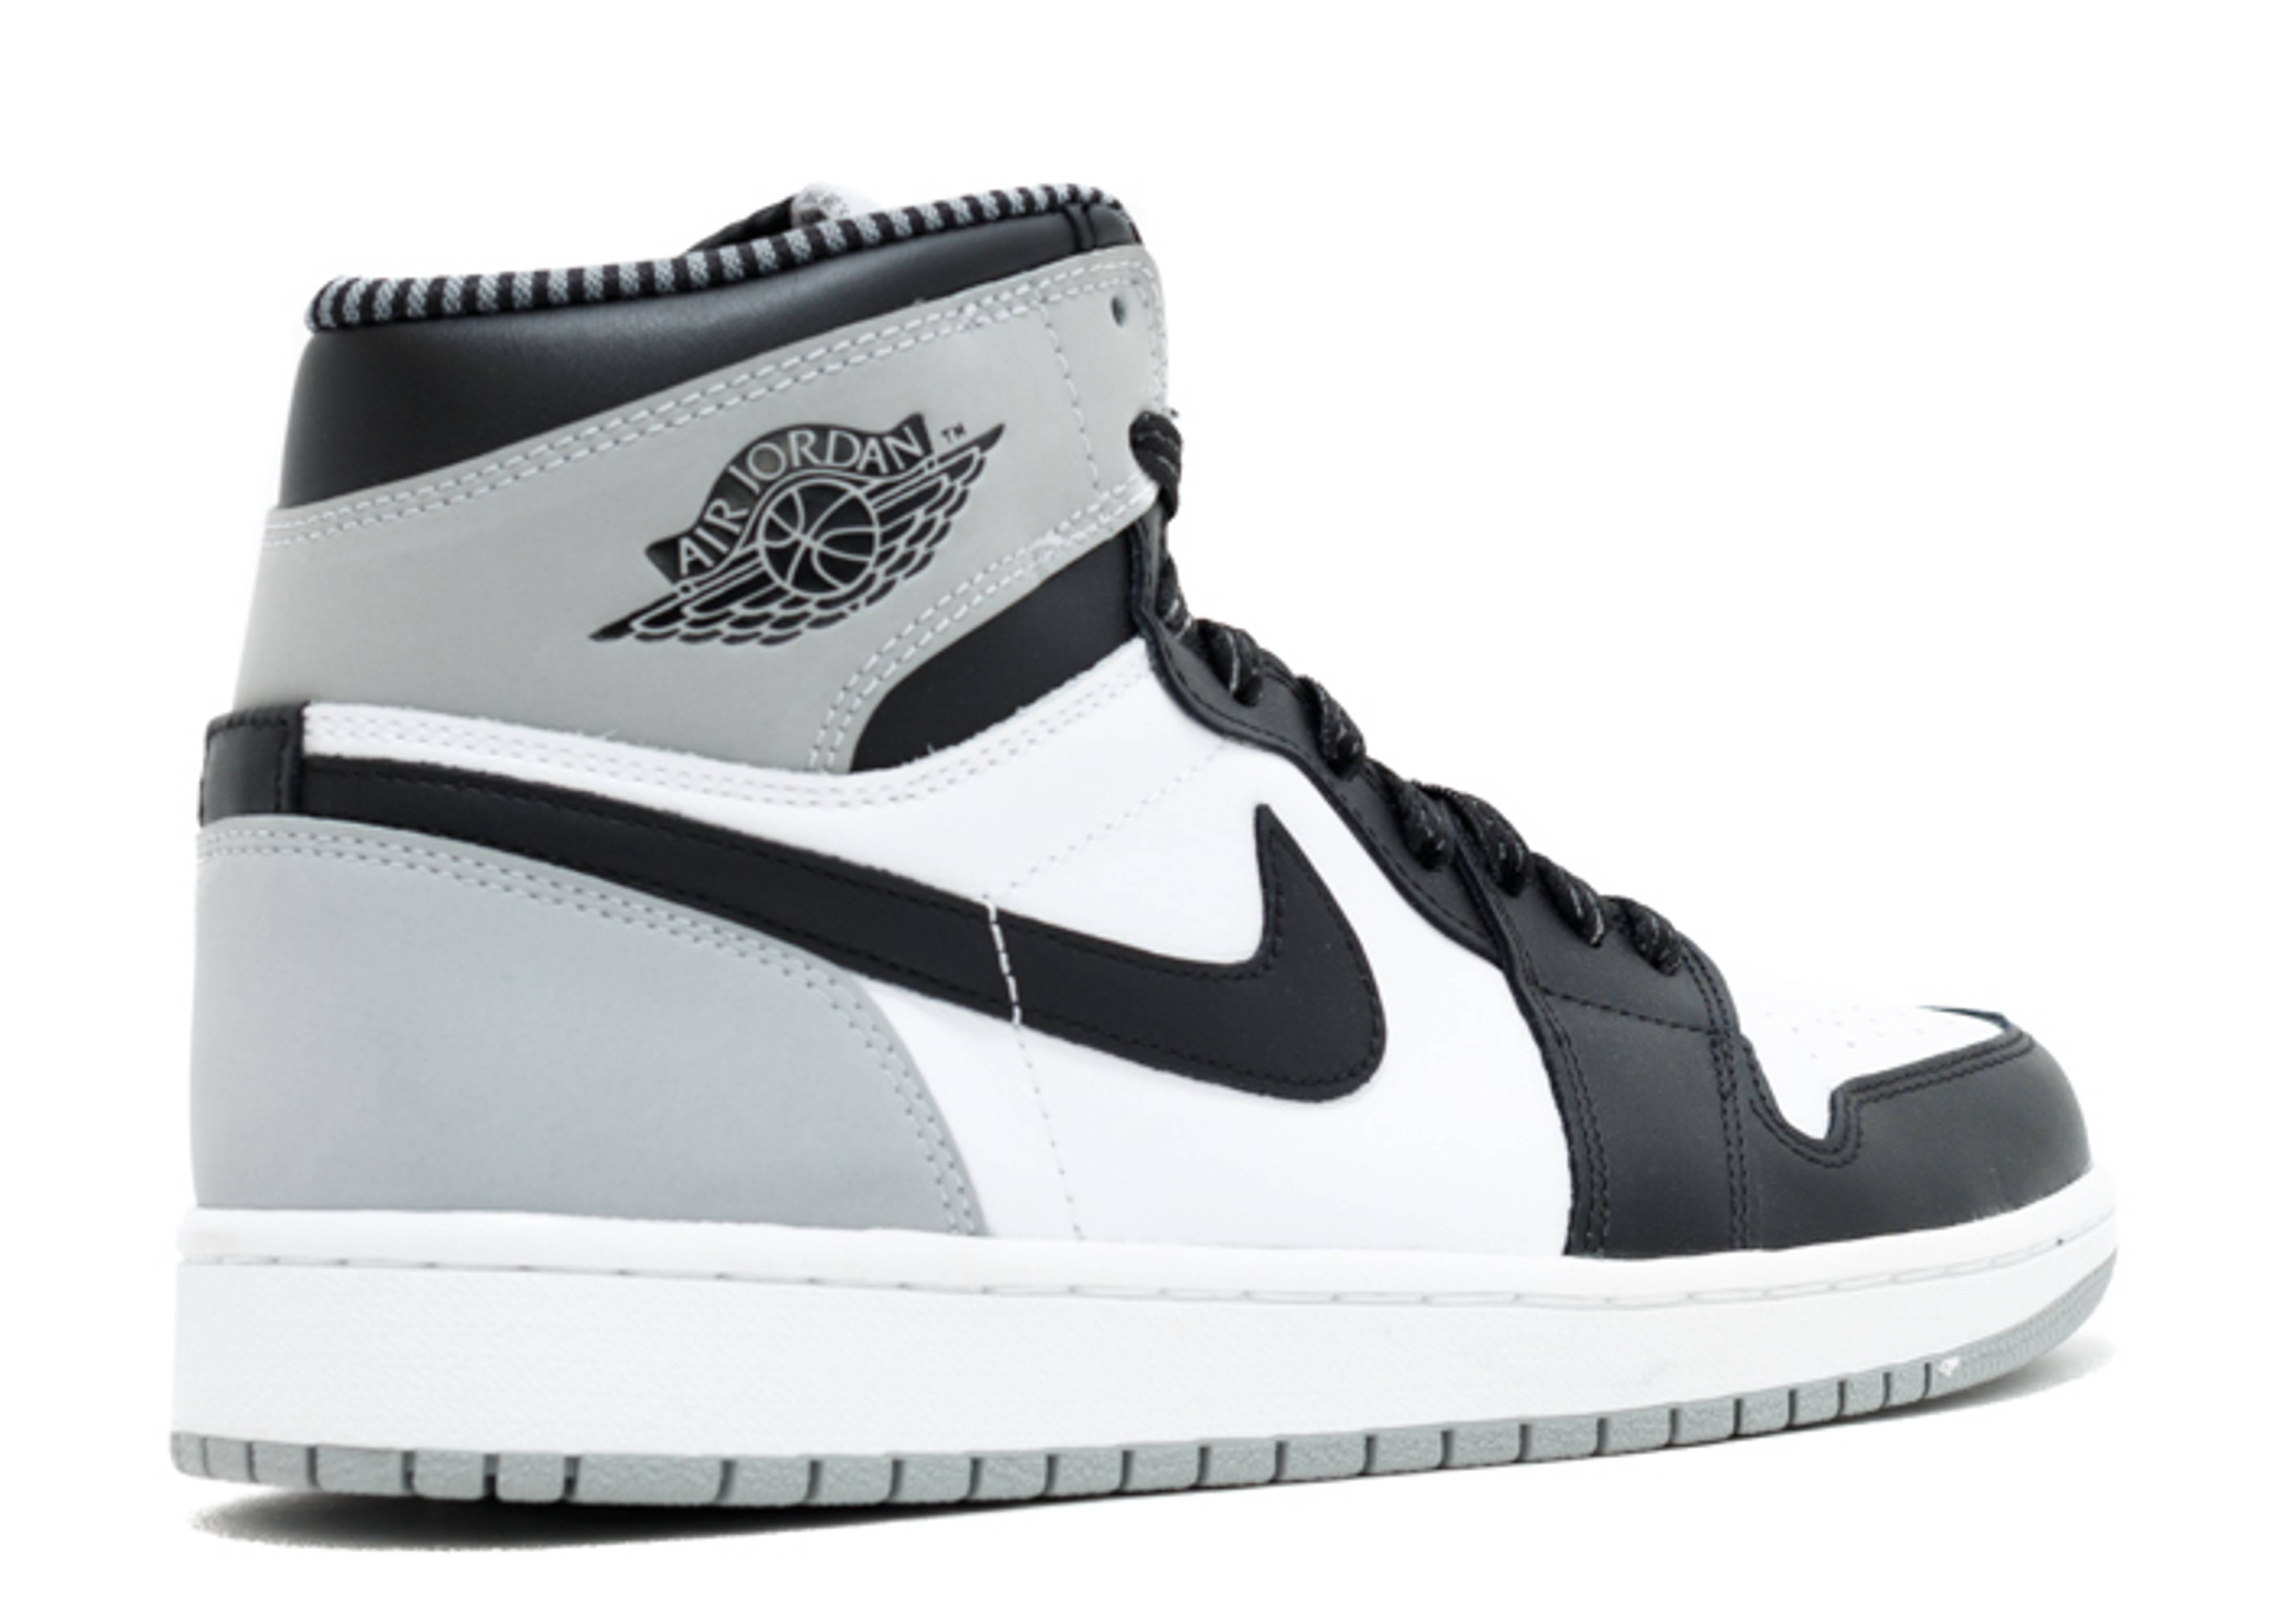 air jordan retro 1 grey black